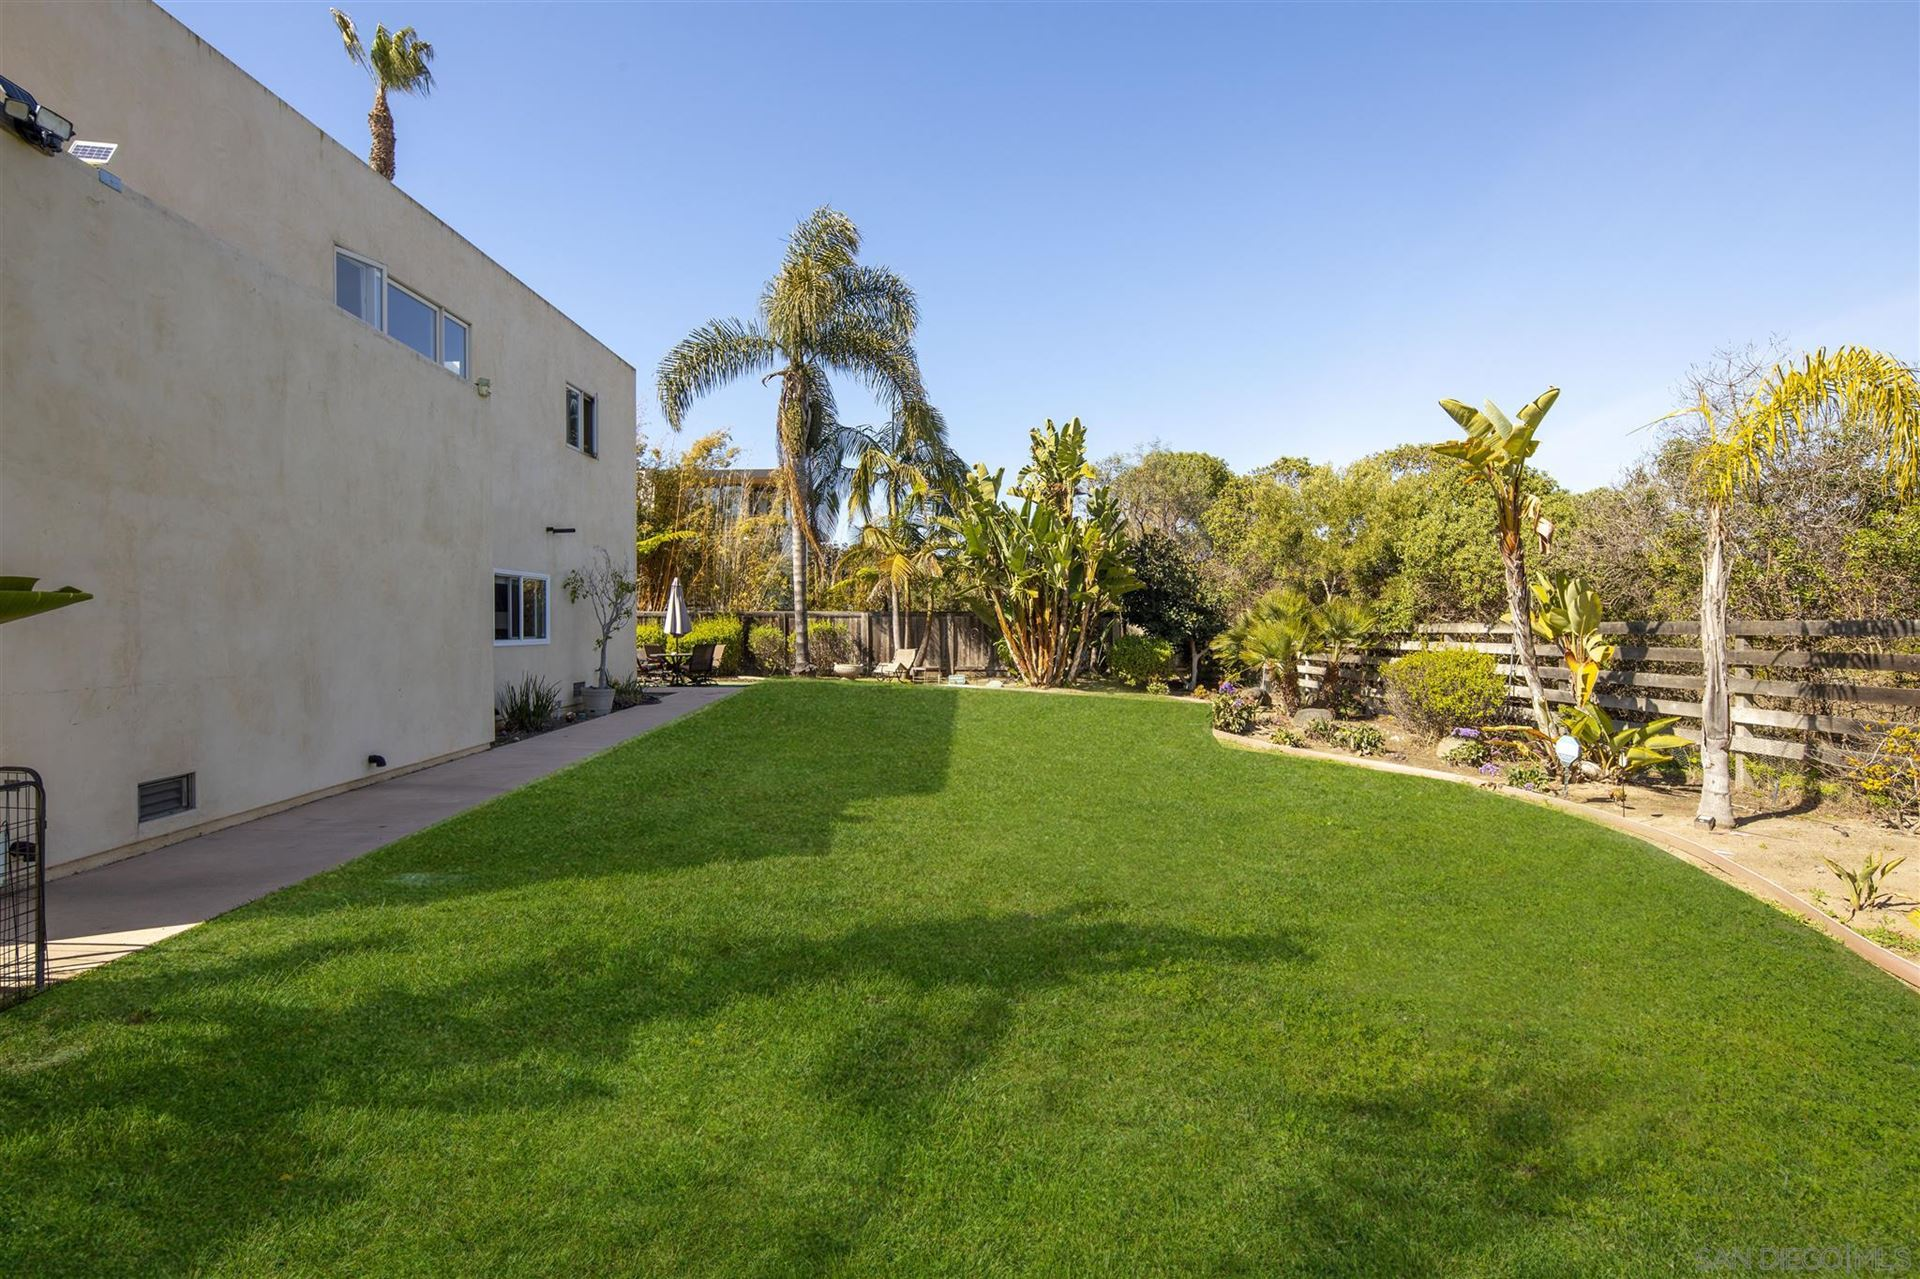 Photo of 260 23rd Street, Del Mar, CA 92014 (MLS # 210006977)